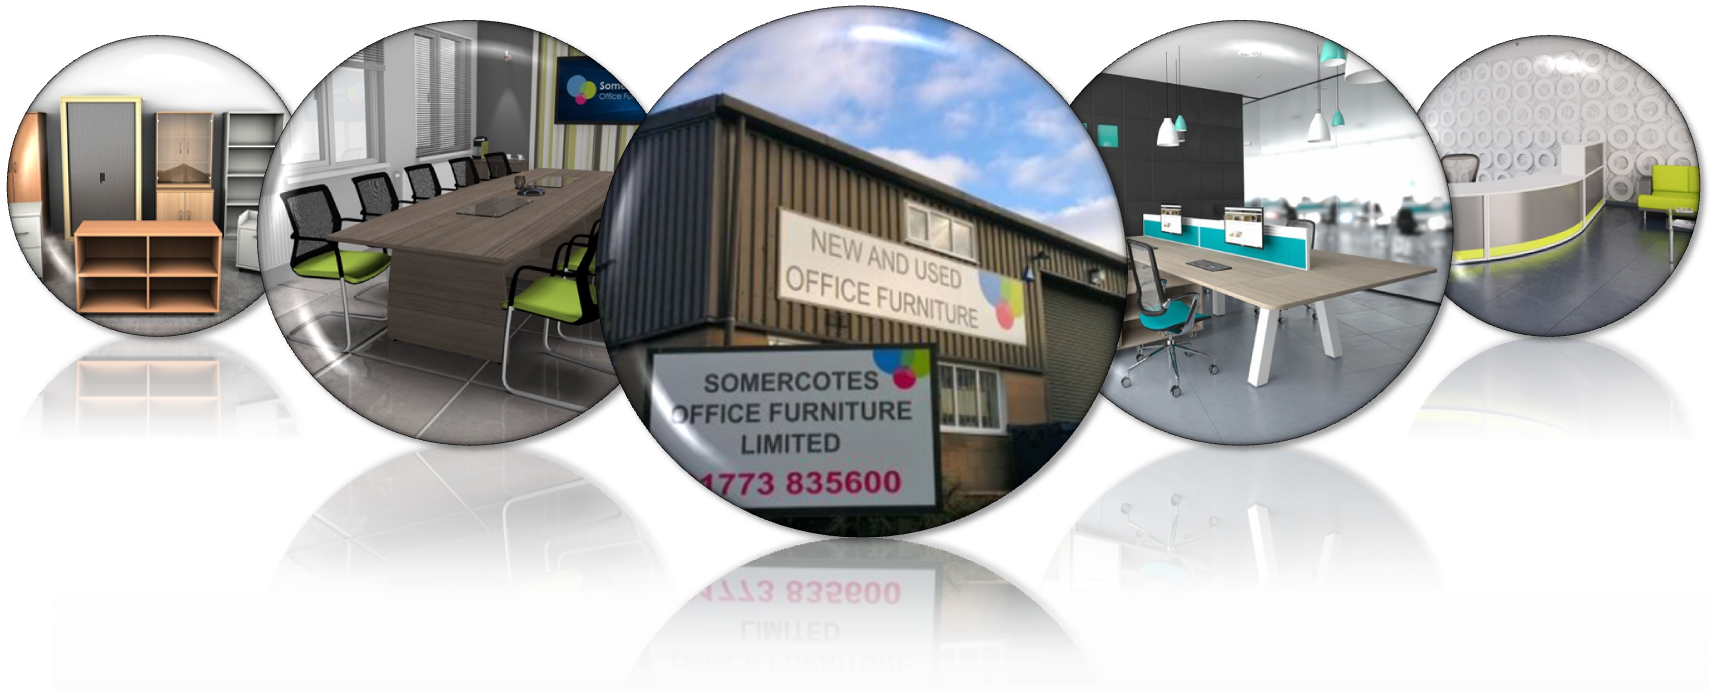 office furniture planning. All The Office Furniture Prices Found On Our Website Include Free Delivery And Installation In Mansfield Area. There Is No Minimum Order. Planning S